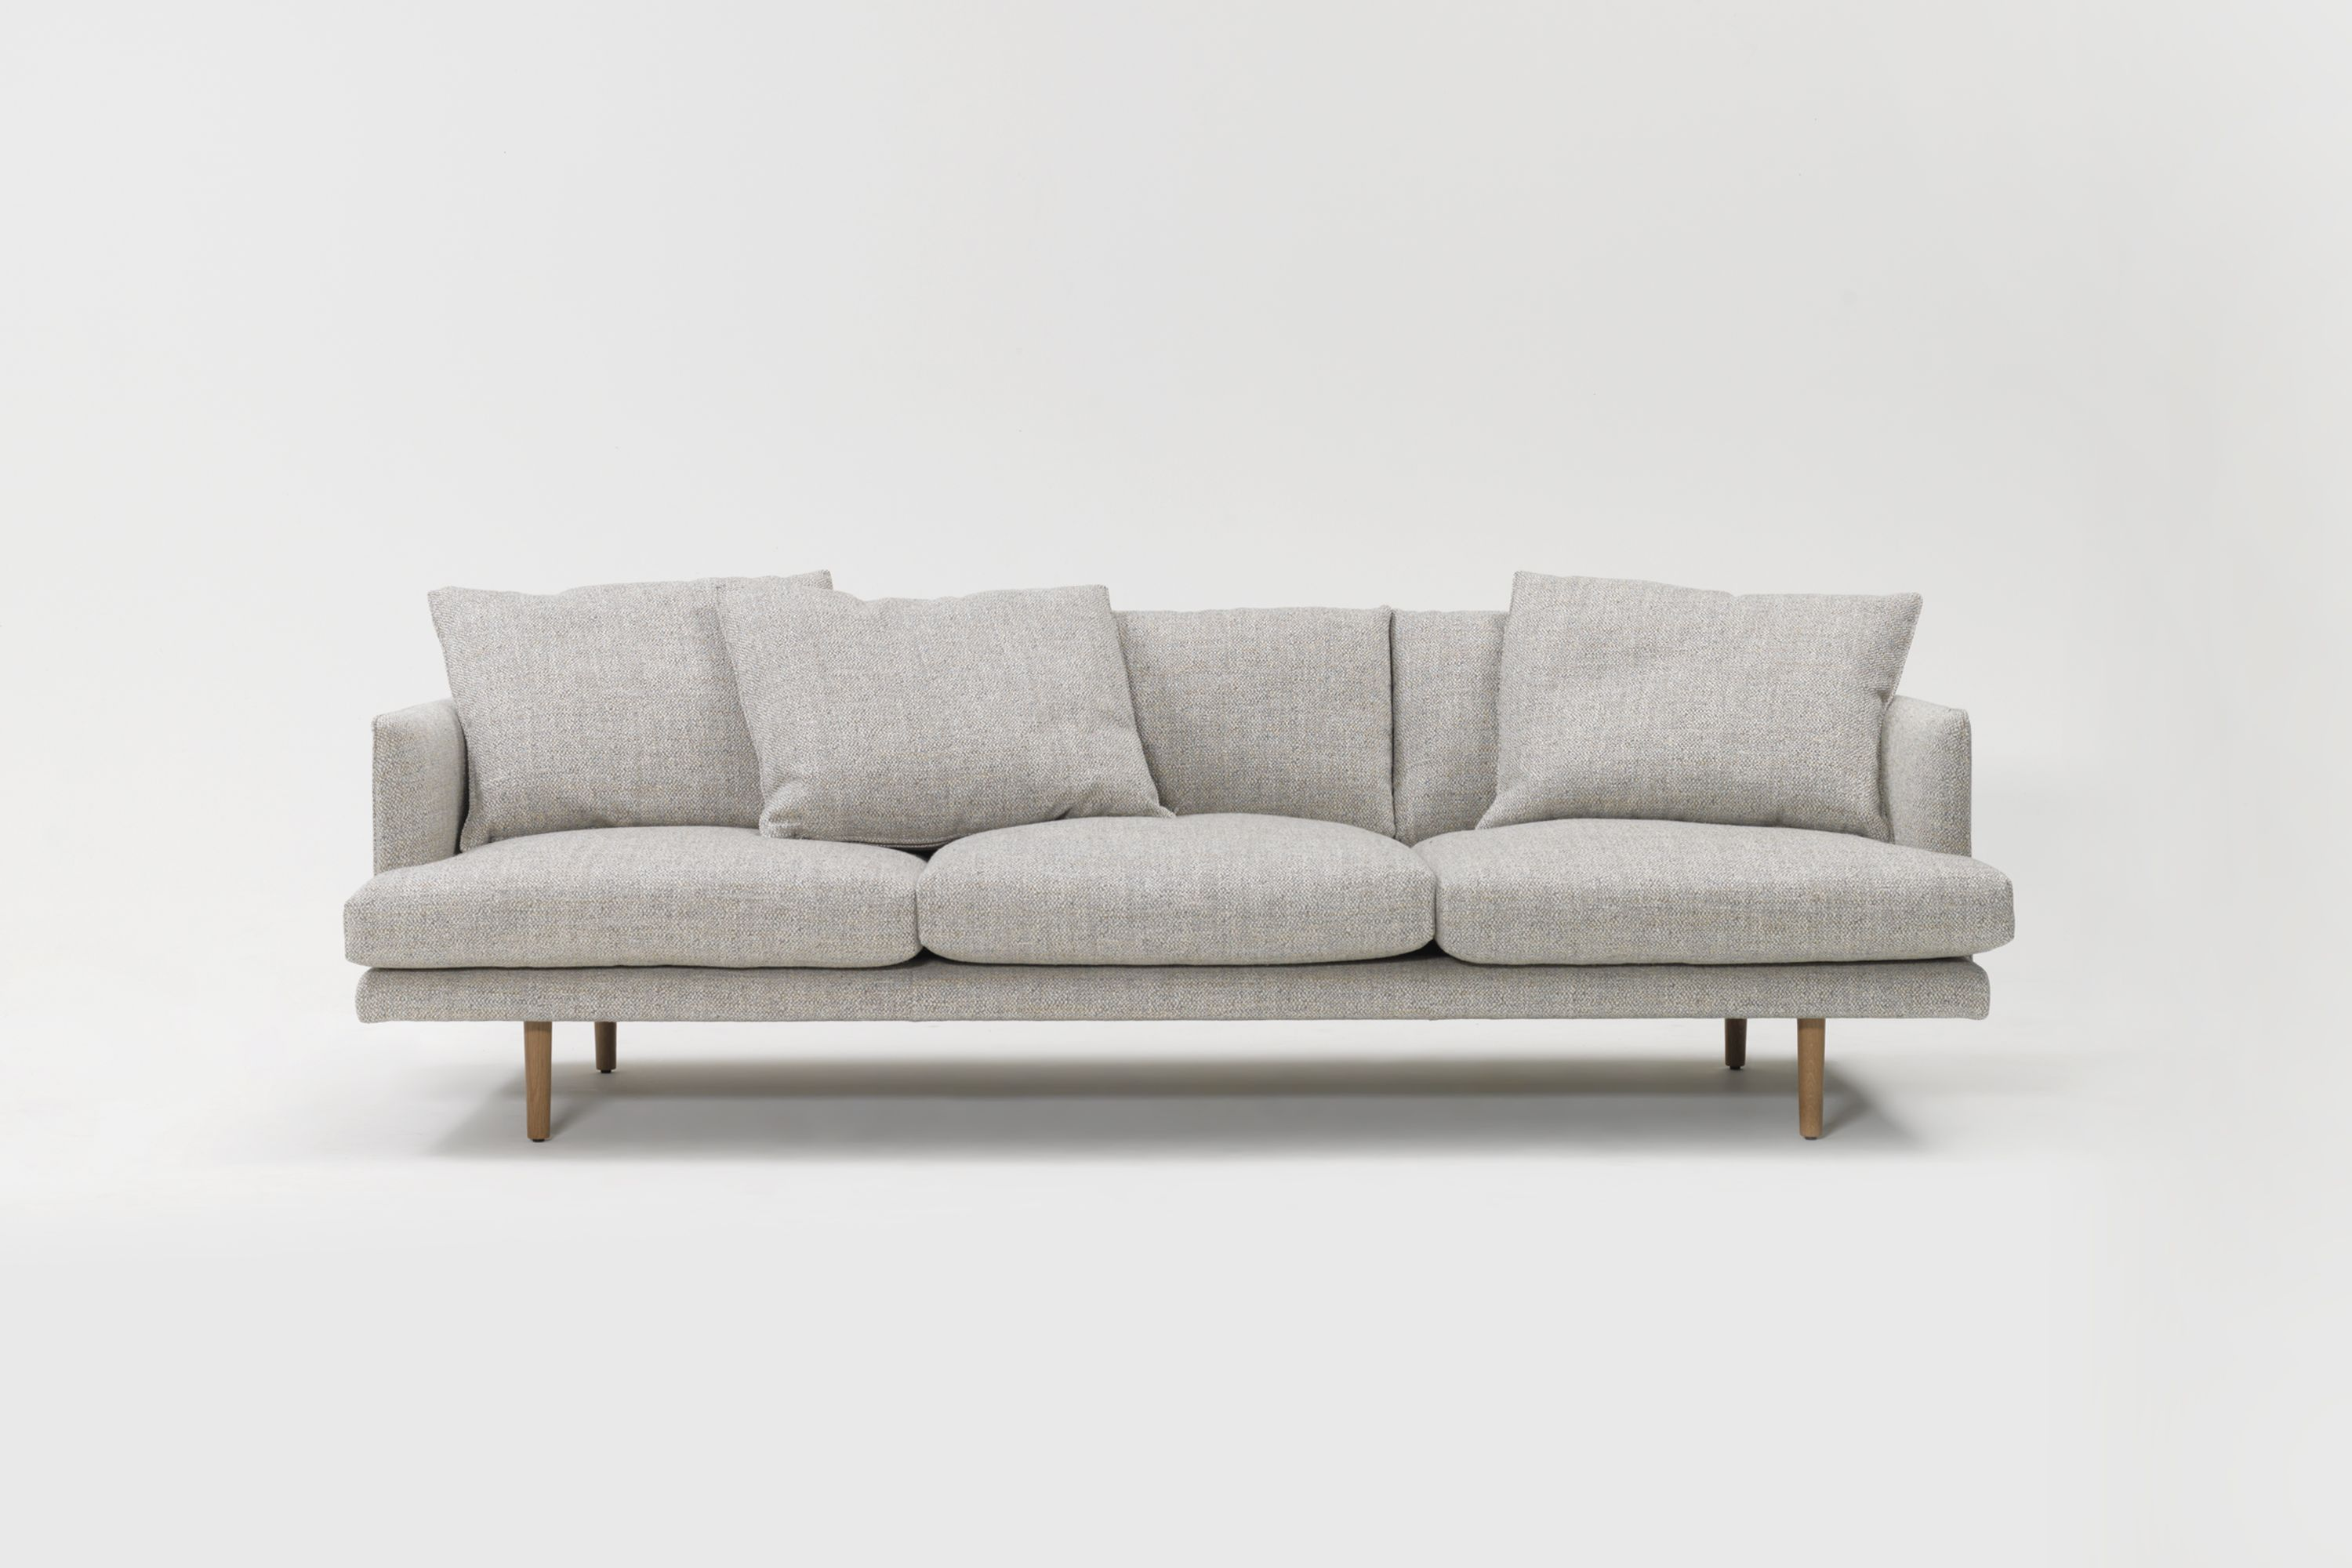 Pin By Jardan On Sofas Nook Sofa Home Decor